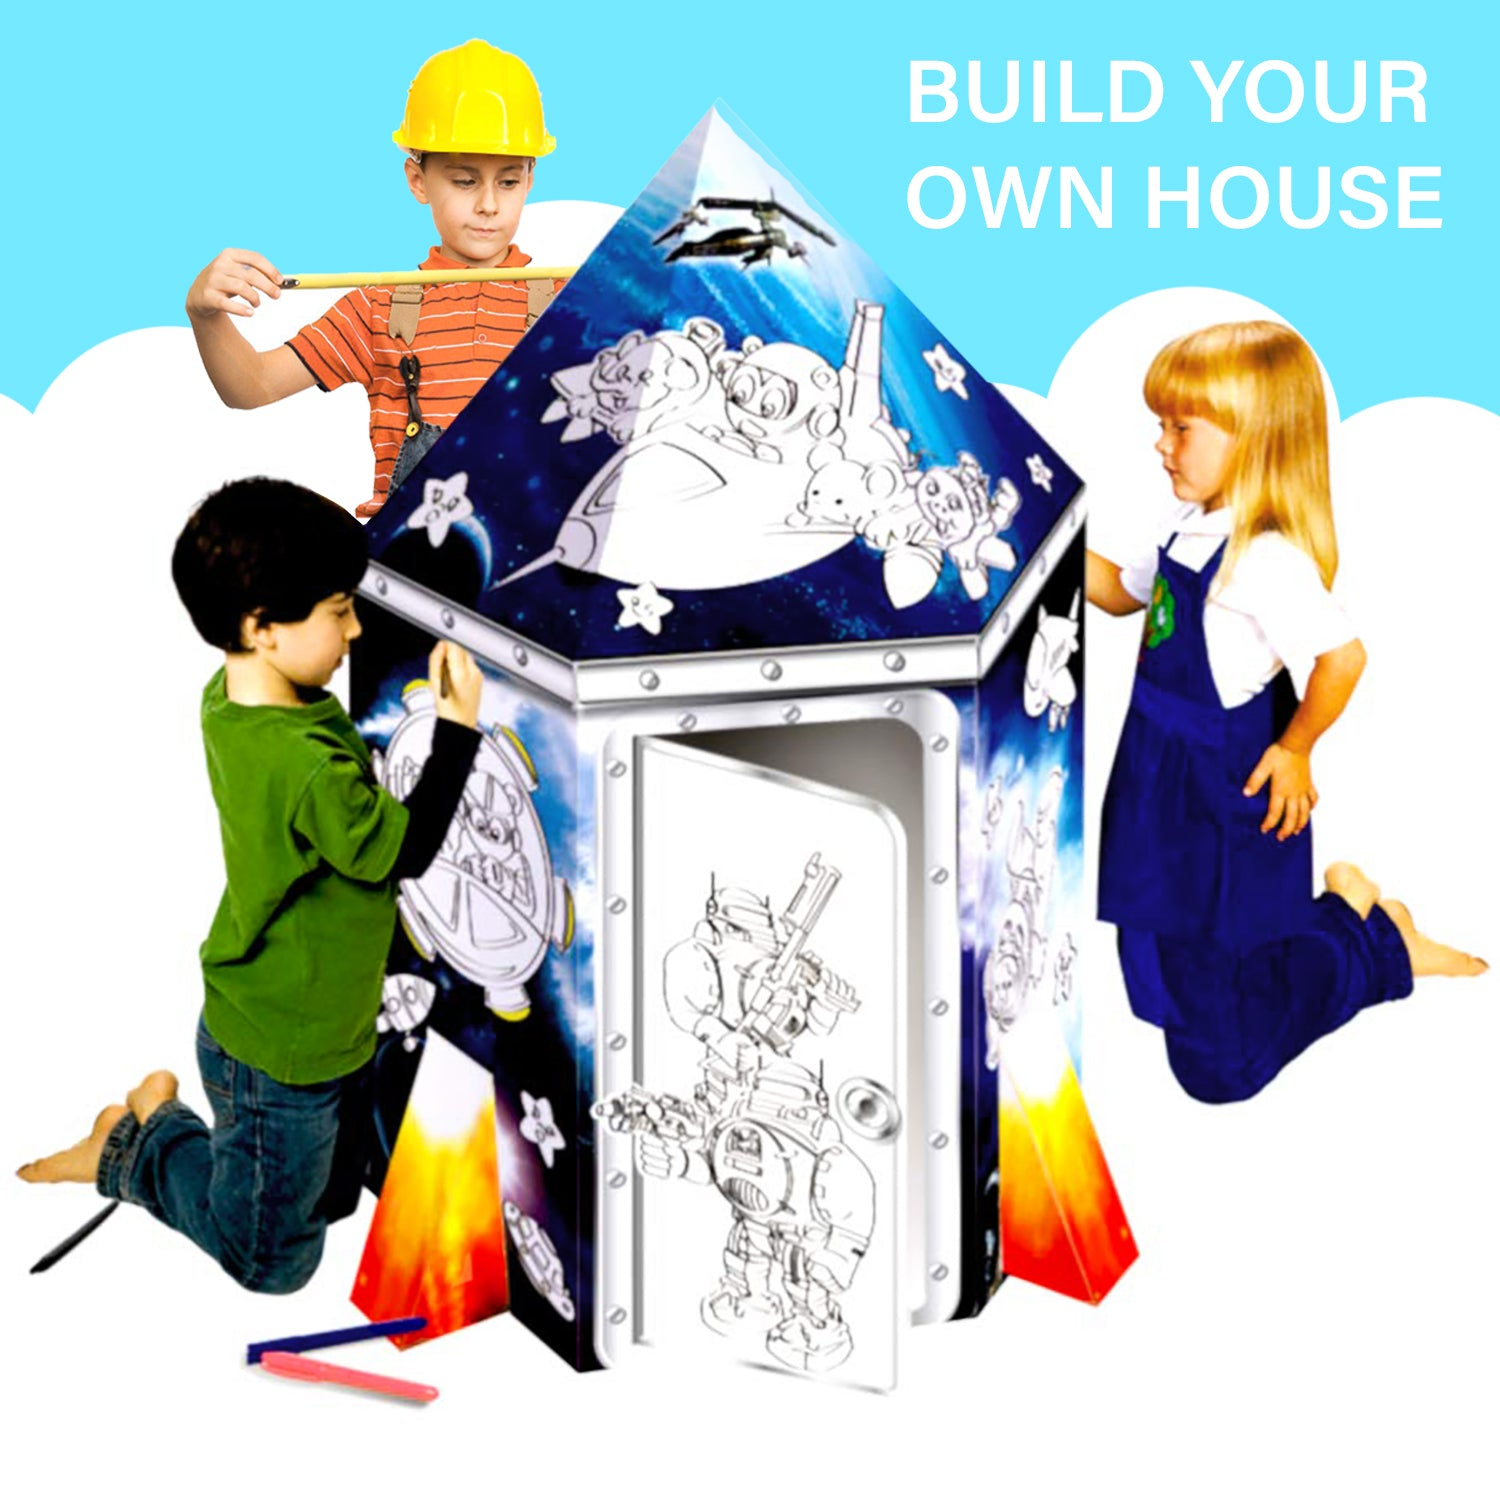 Rocket Ship Playhouse - Coloring Cardboard House – Oh! Trendy